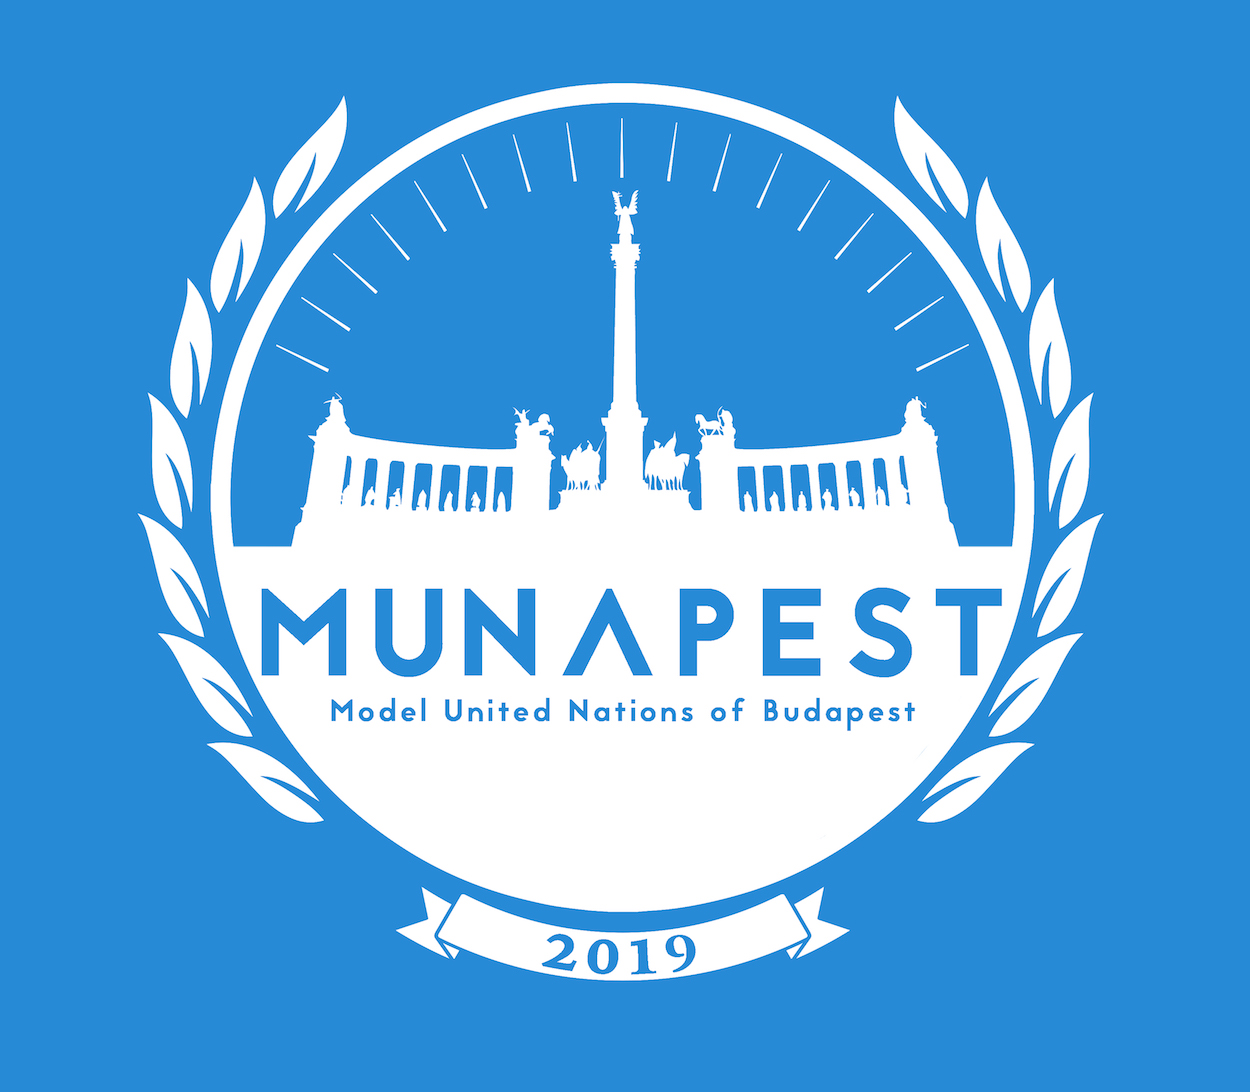 Model United Nations of Budapest 2019